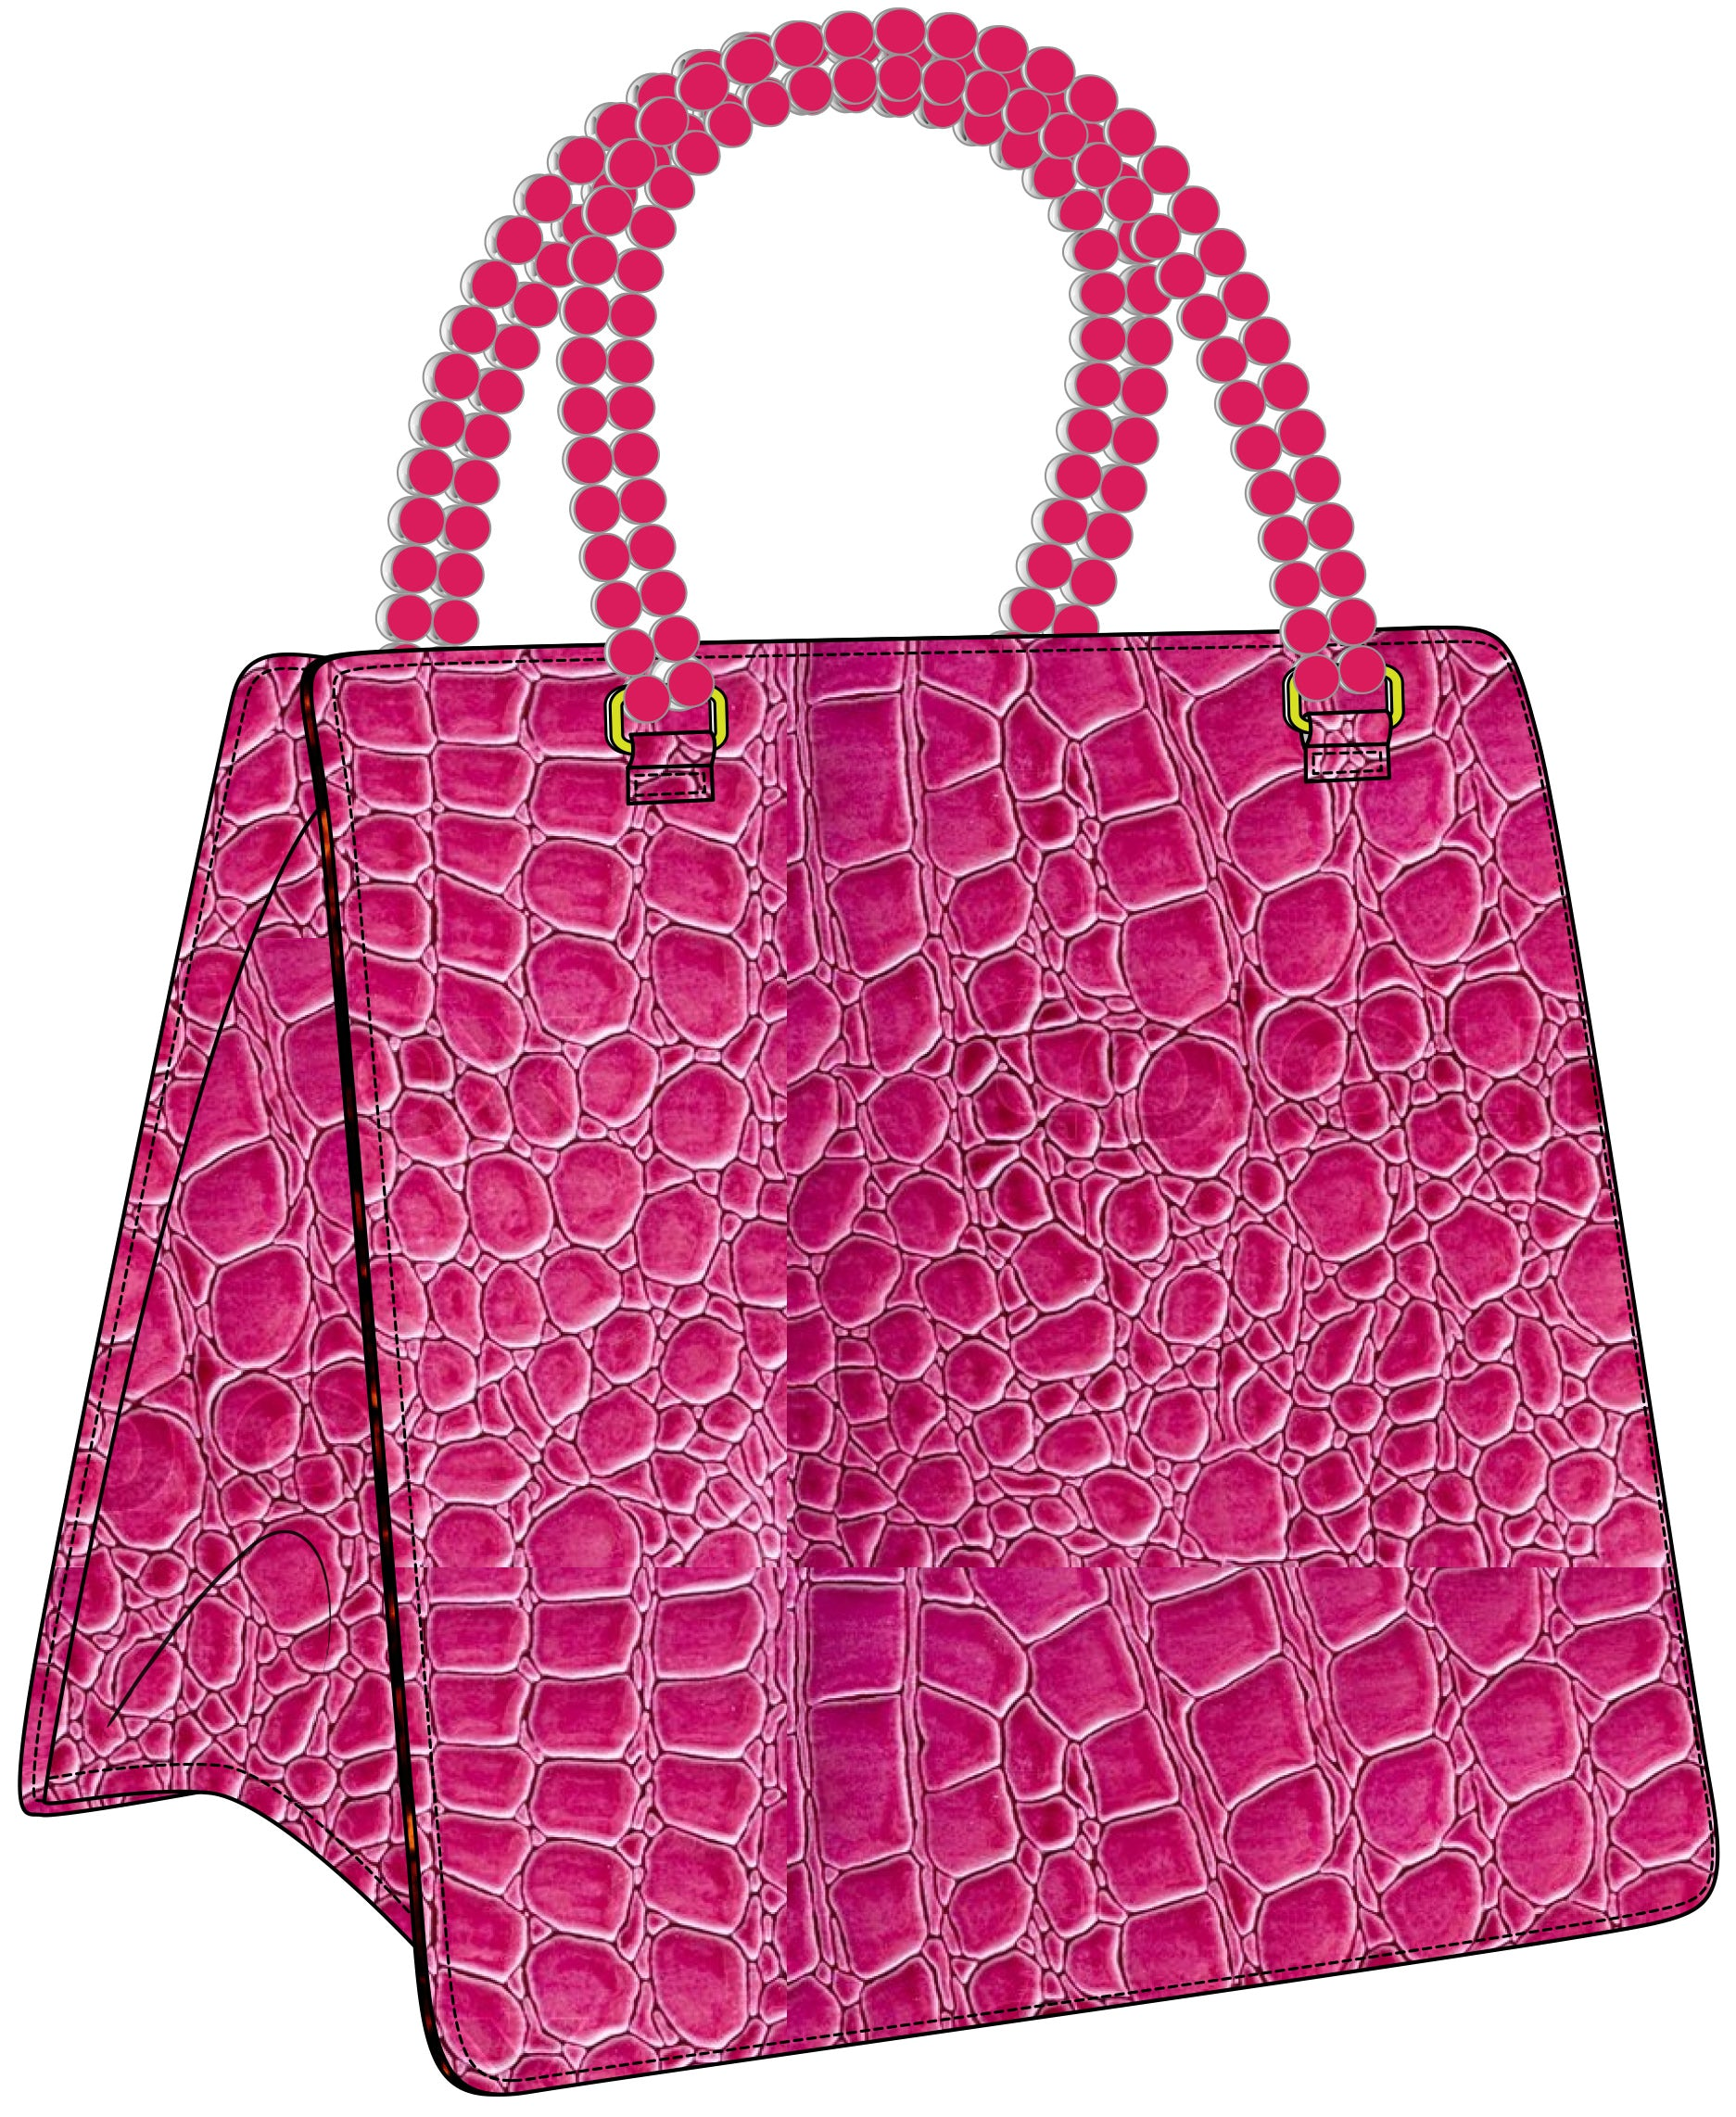 Mel Boteri's First Open Call Handbag Design Competition | Finalizing Materials 6